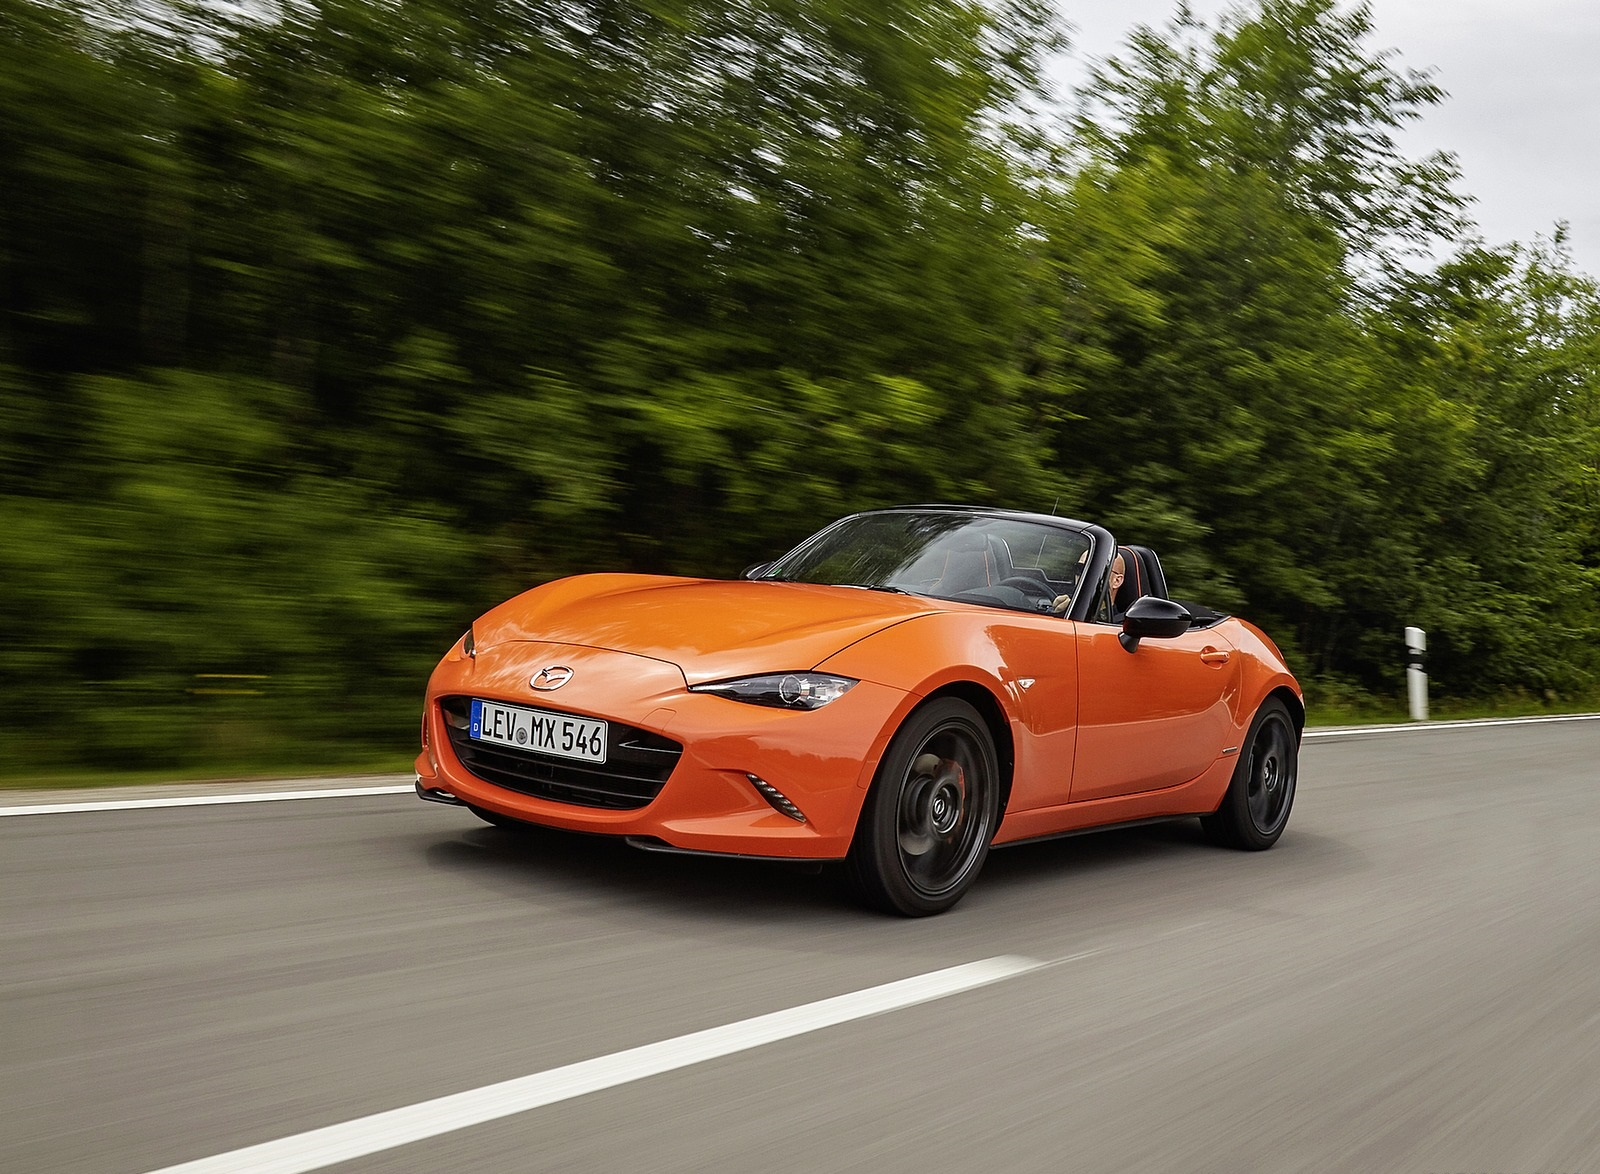 2019 Mazda MX-5 Miata 30th Anniversary Edition Front Three-Quarter Wallpapers (14)